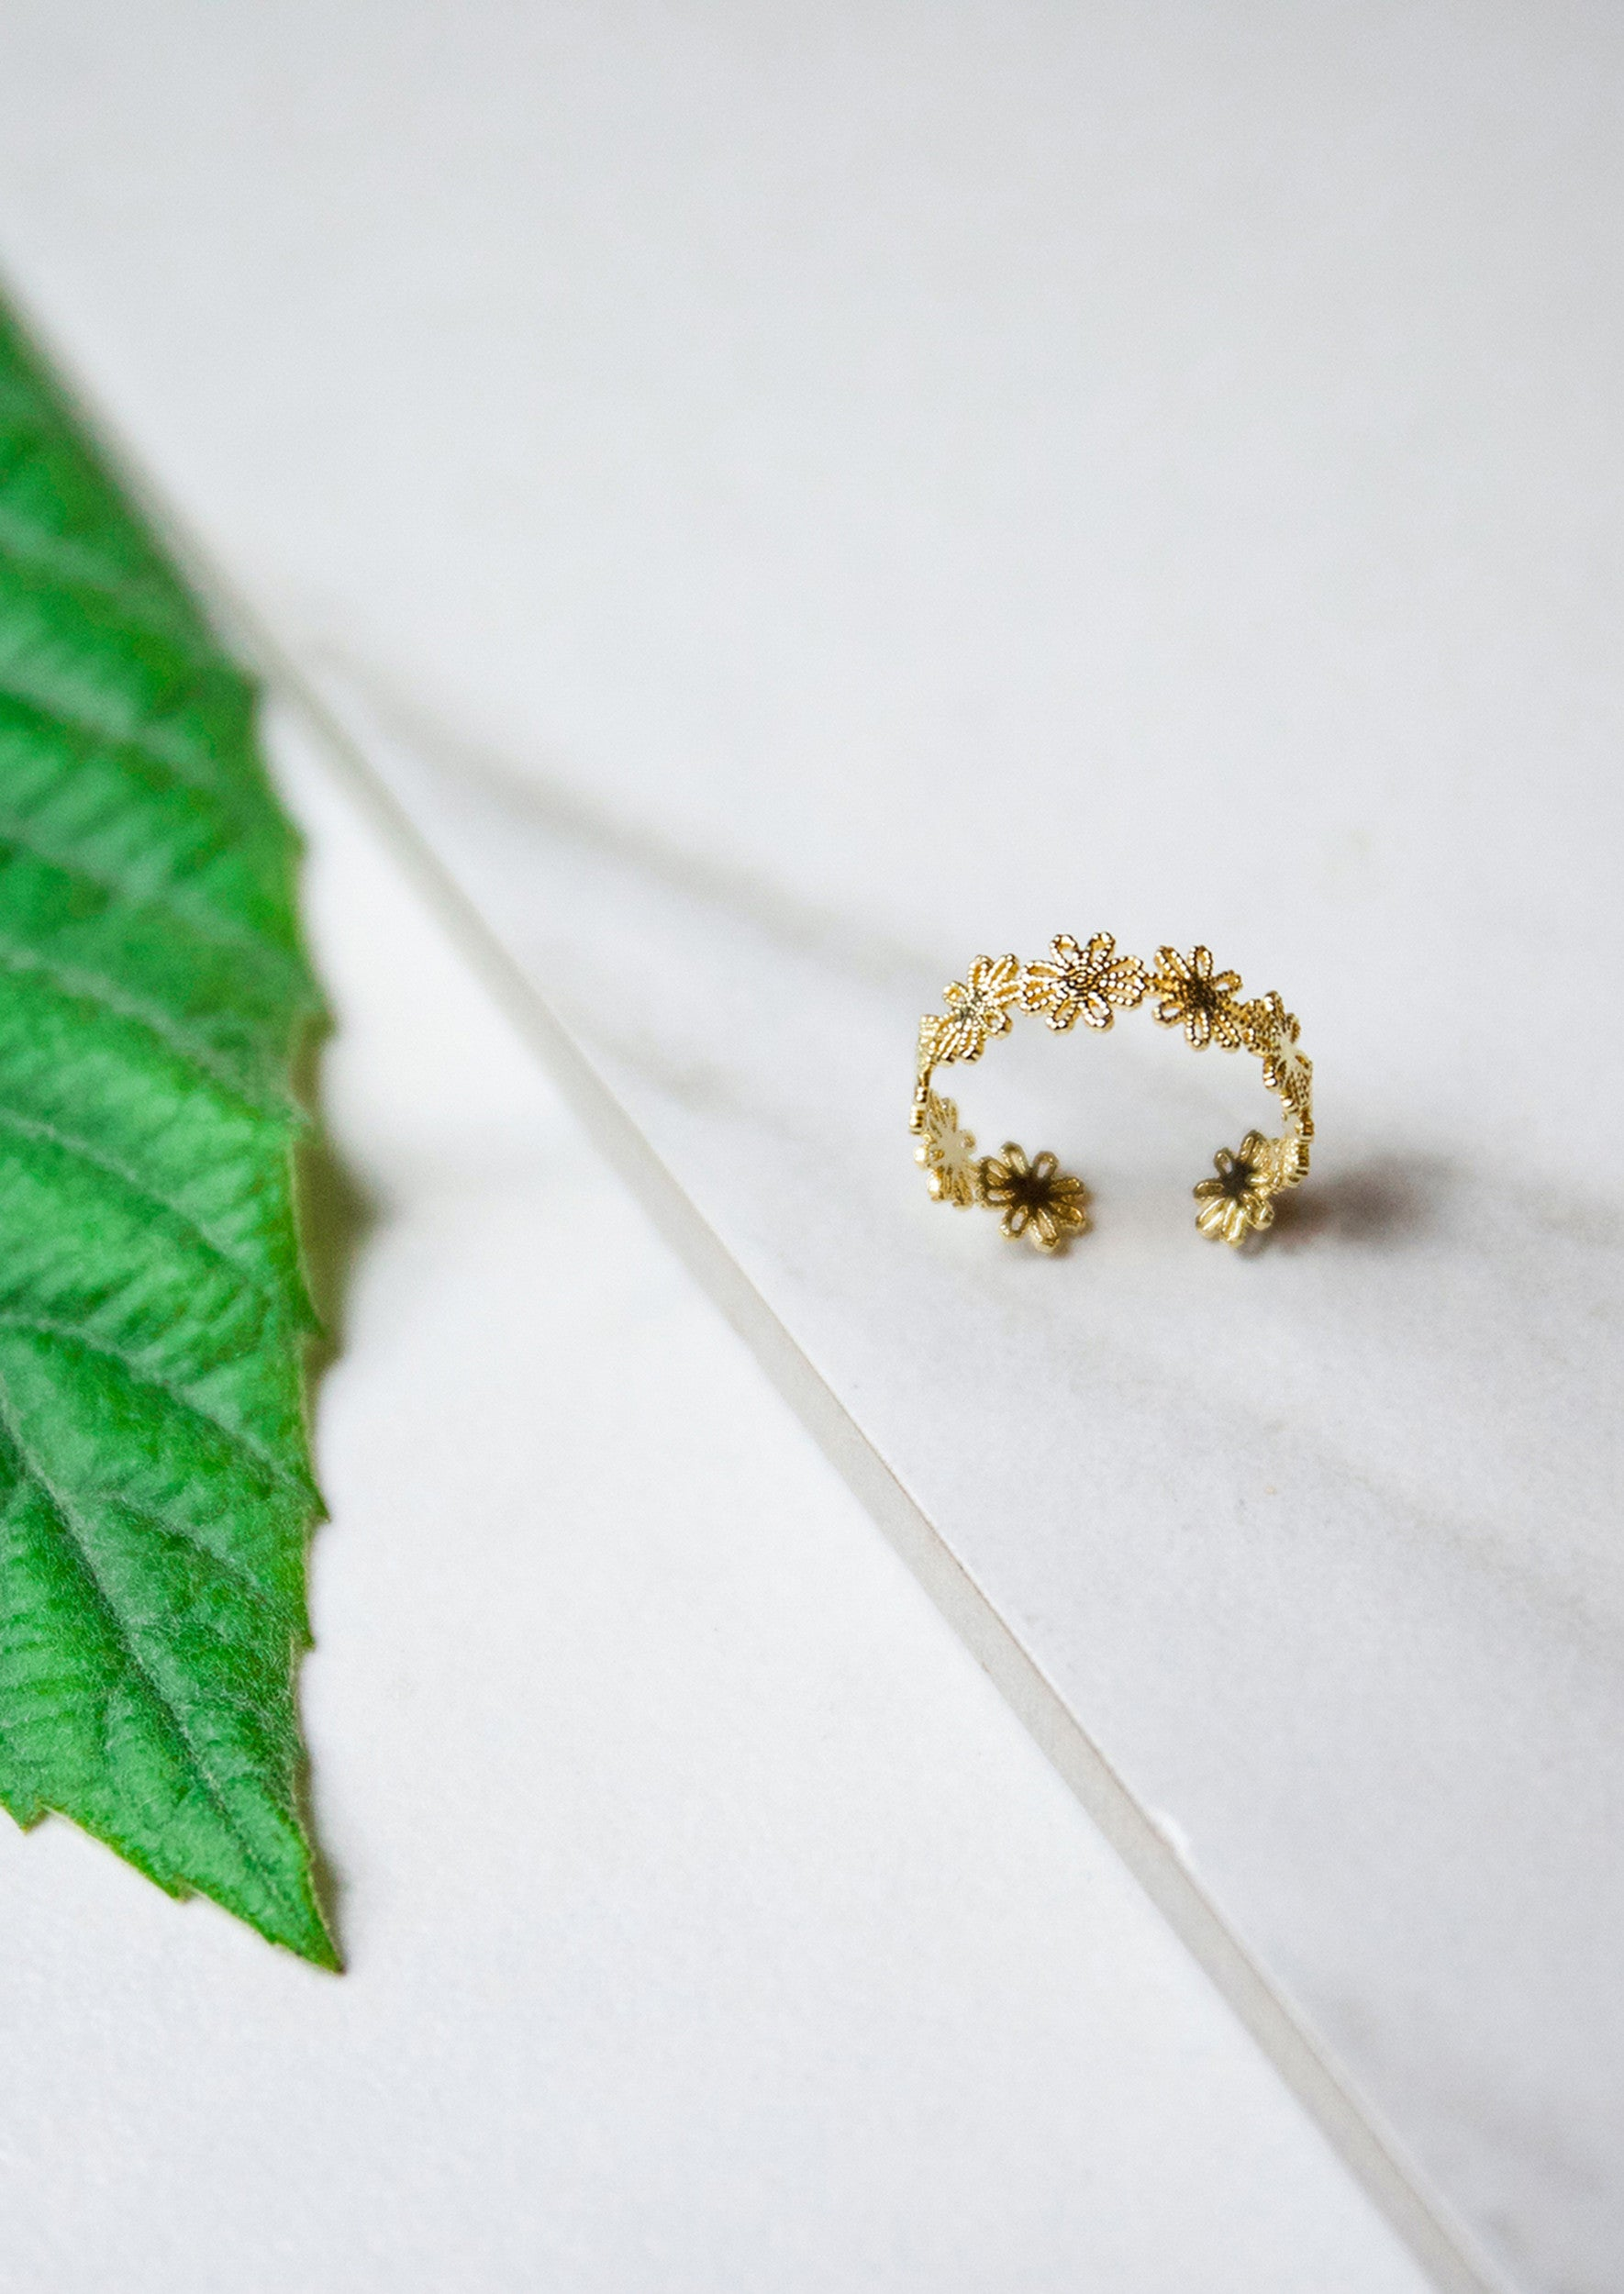 Peony Ring - Jules Smith - 14K Gold Plated - Boho Jewelry